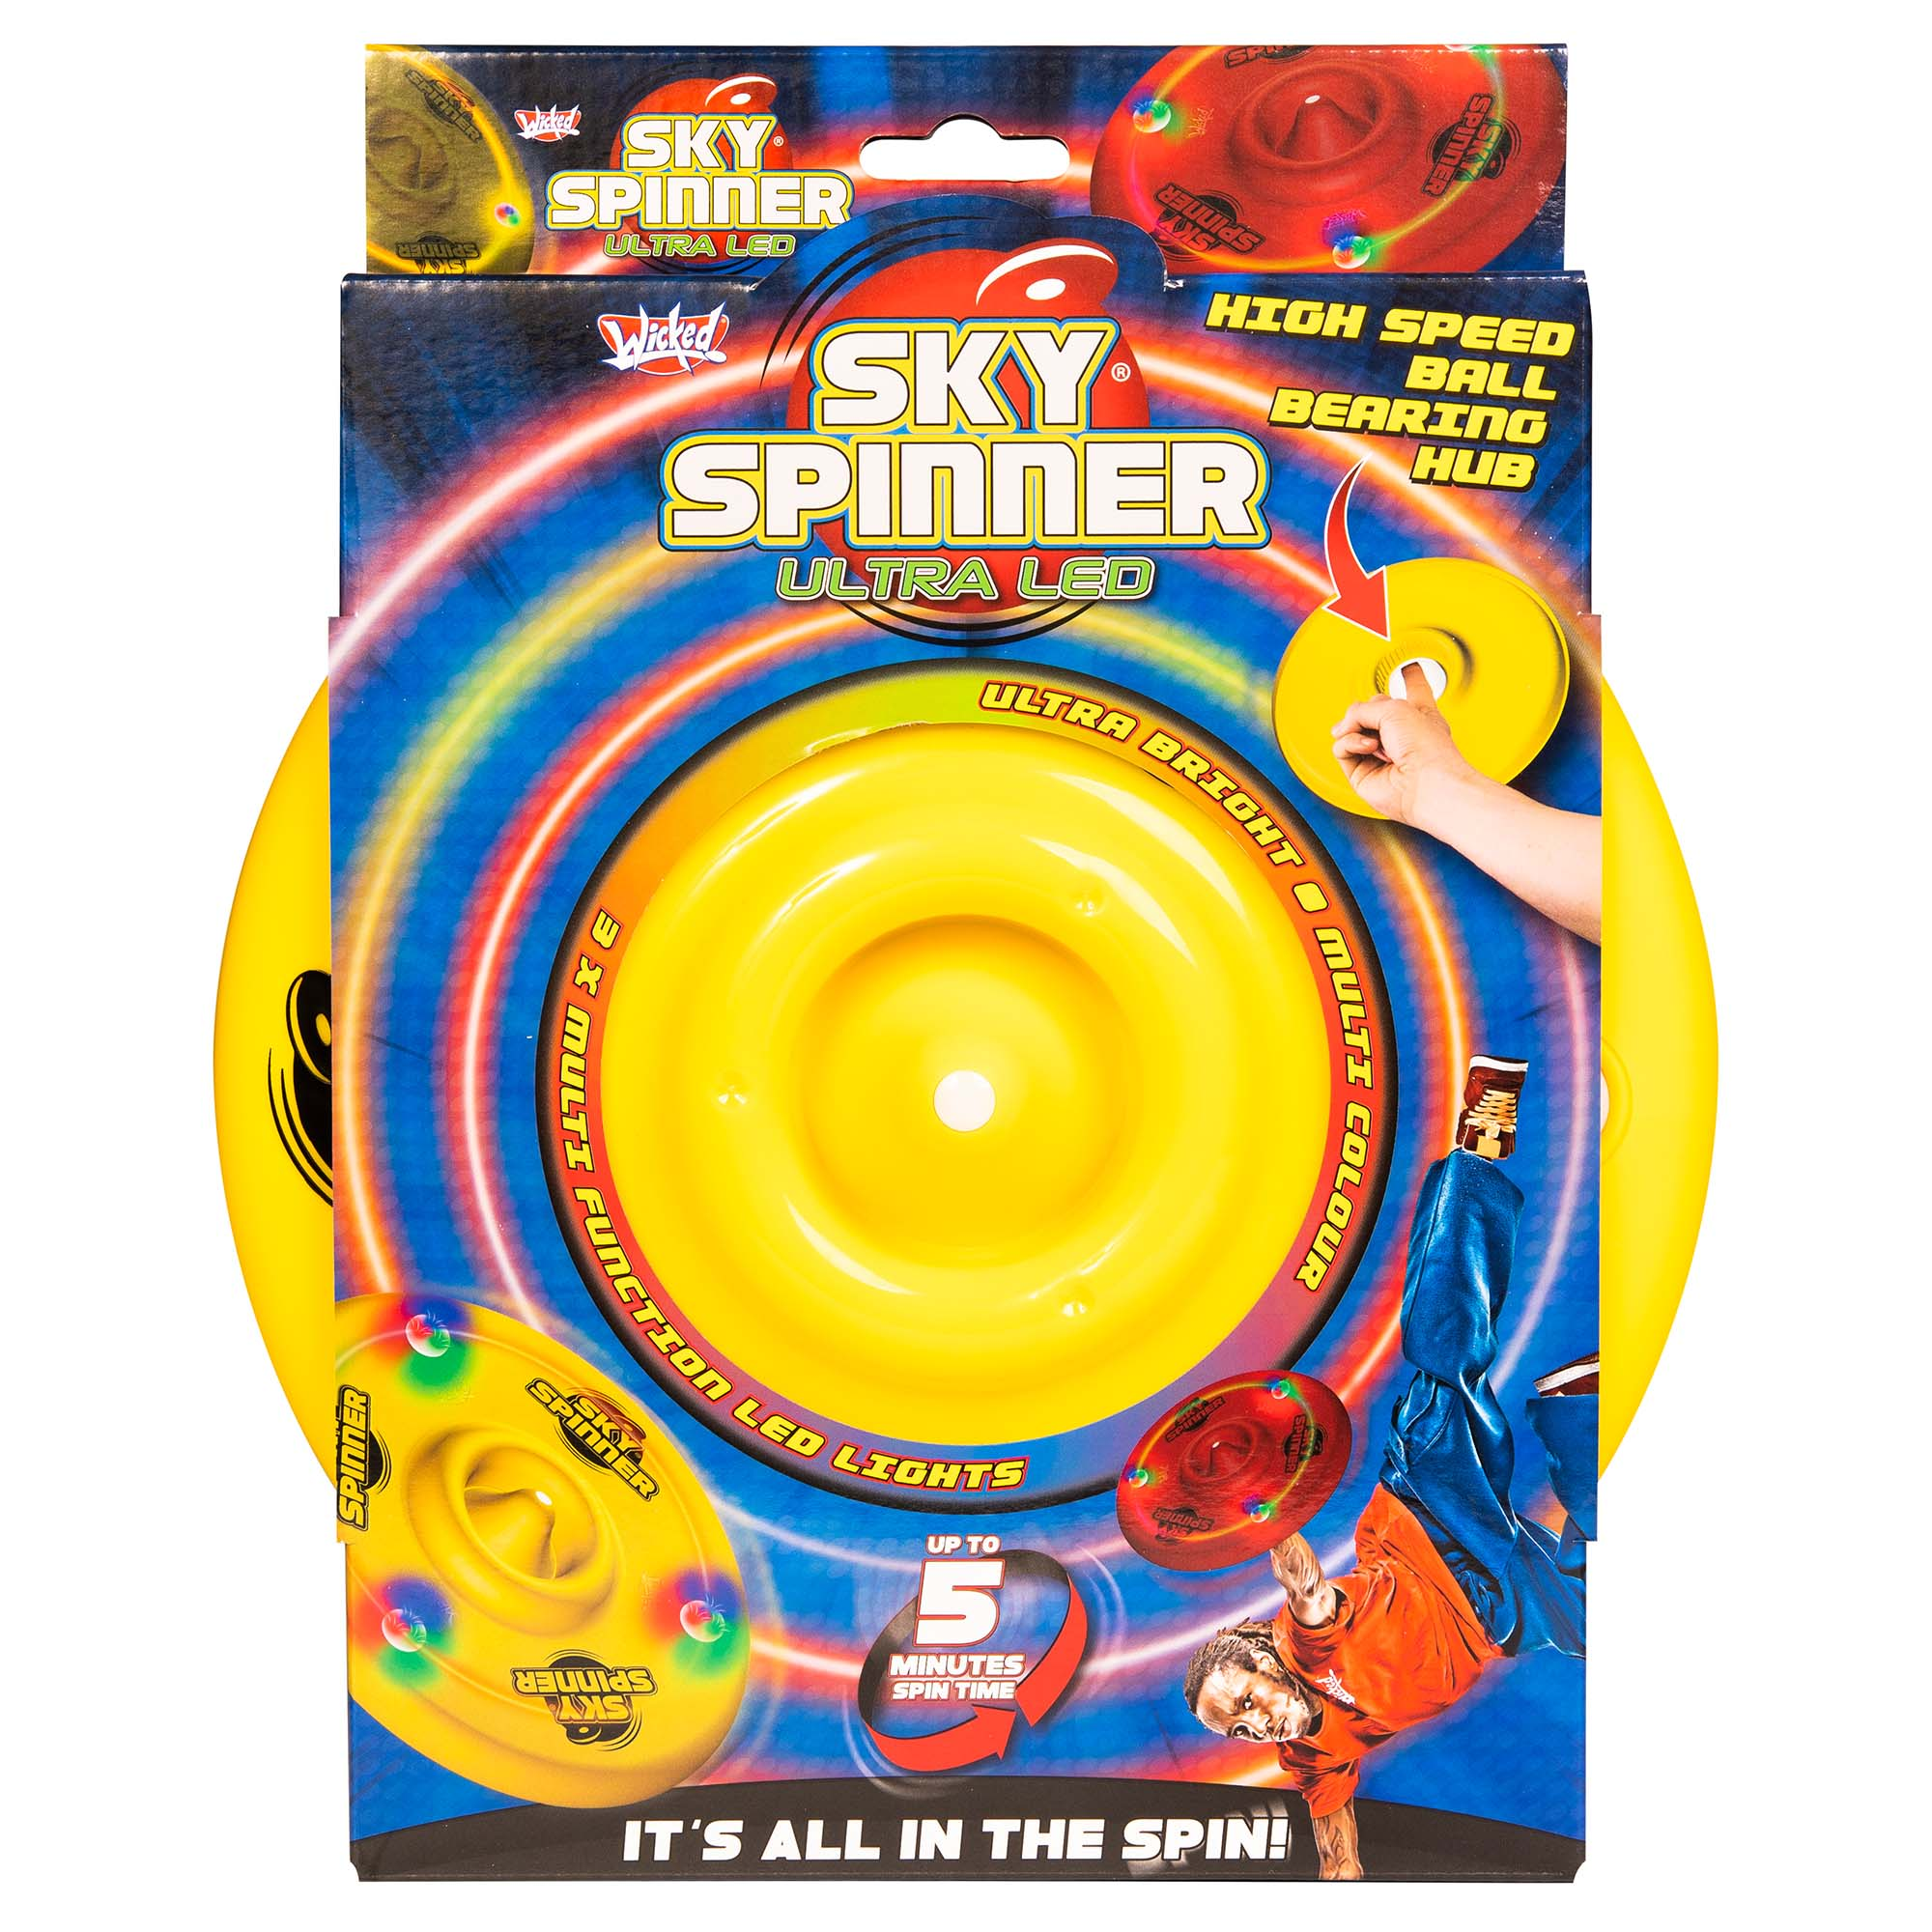 Wicked Sky Spinner Ultra LED Trick Disc - Yellow